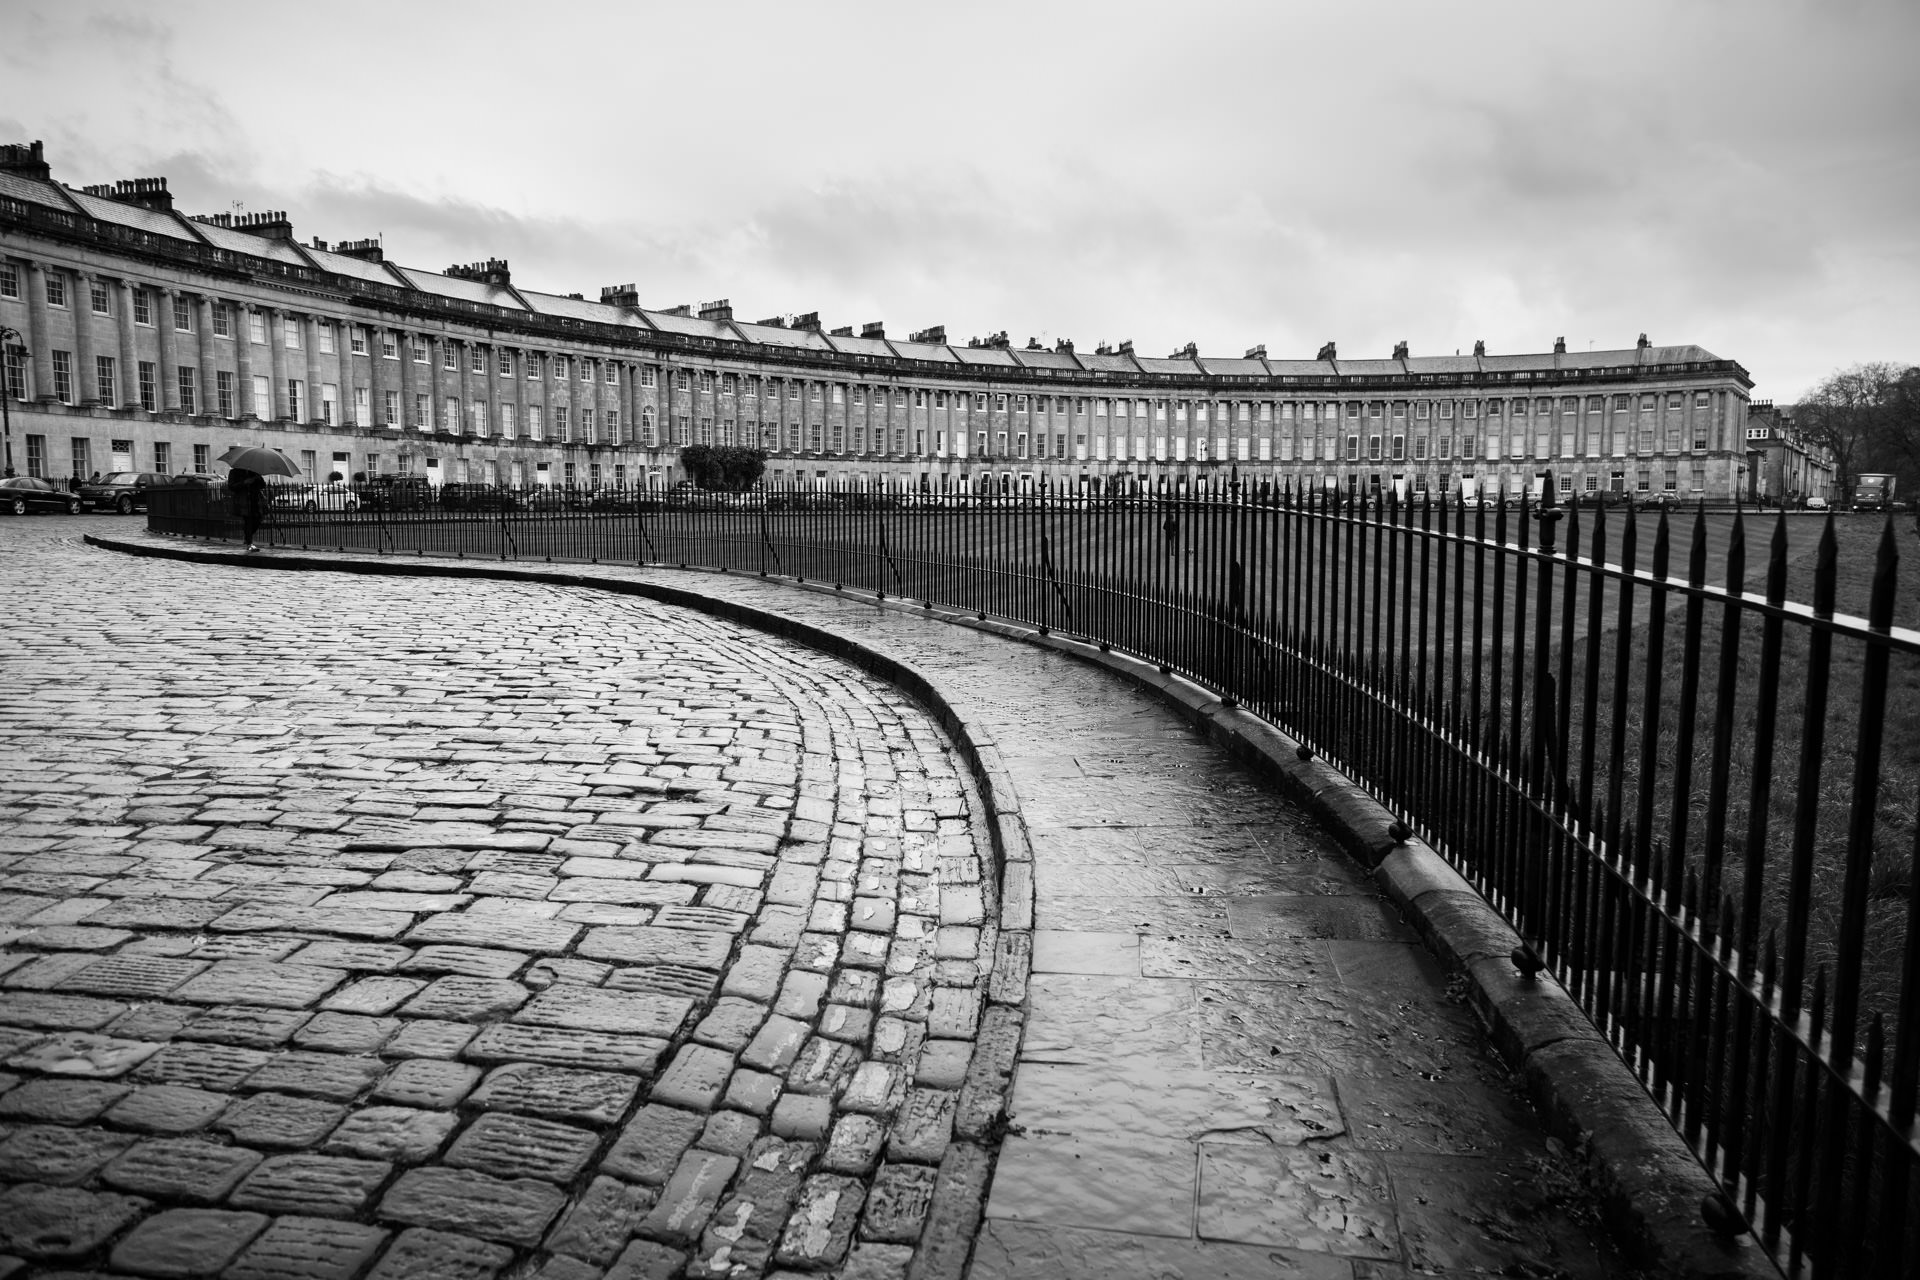 The Royal Crescent , one of Bath's most affluent areas built between 1767 and 1775.